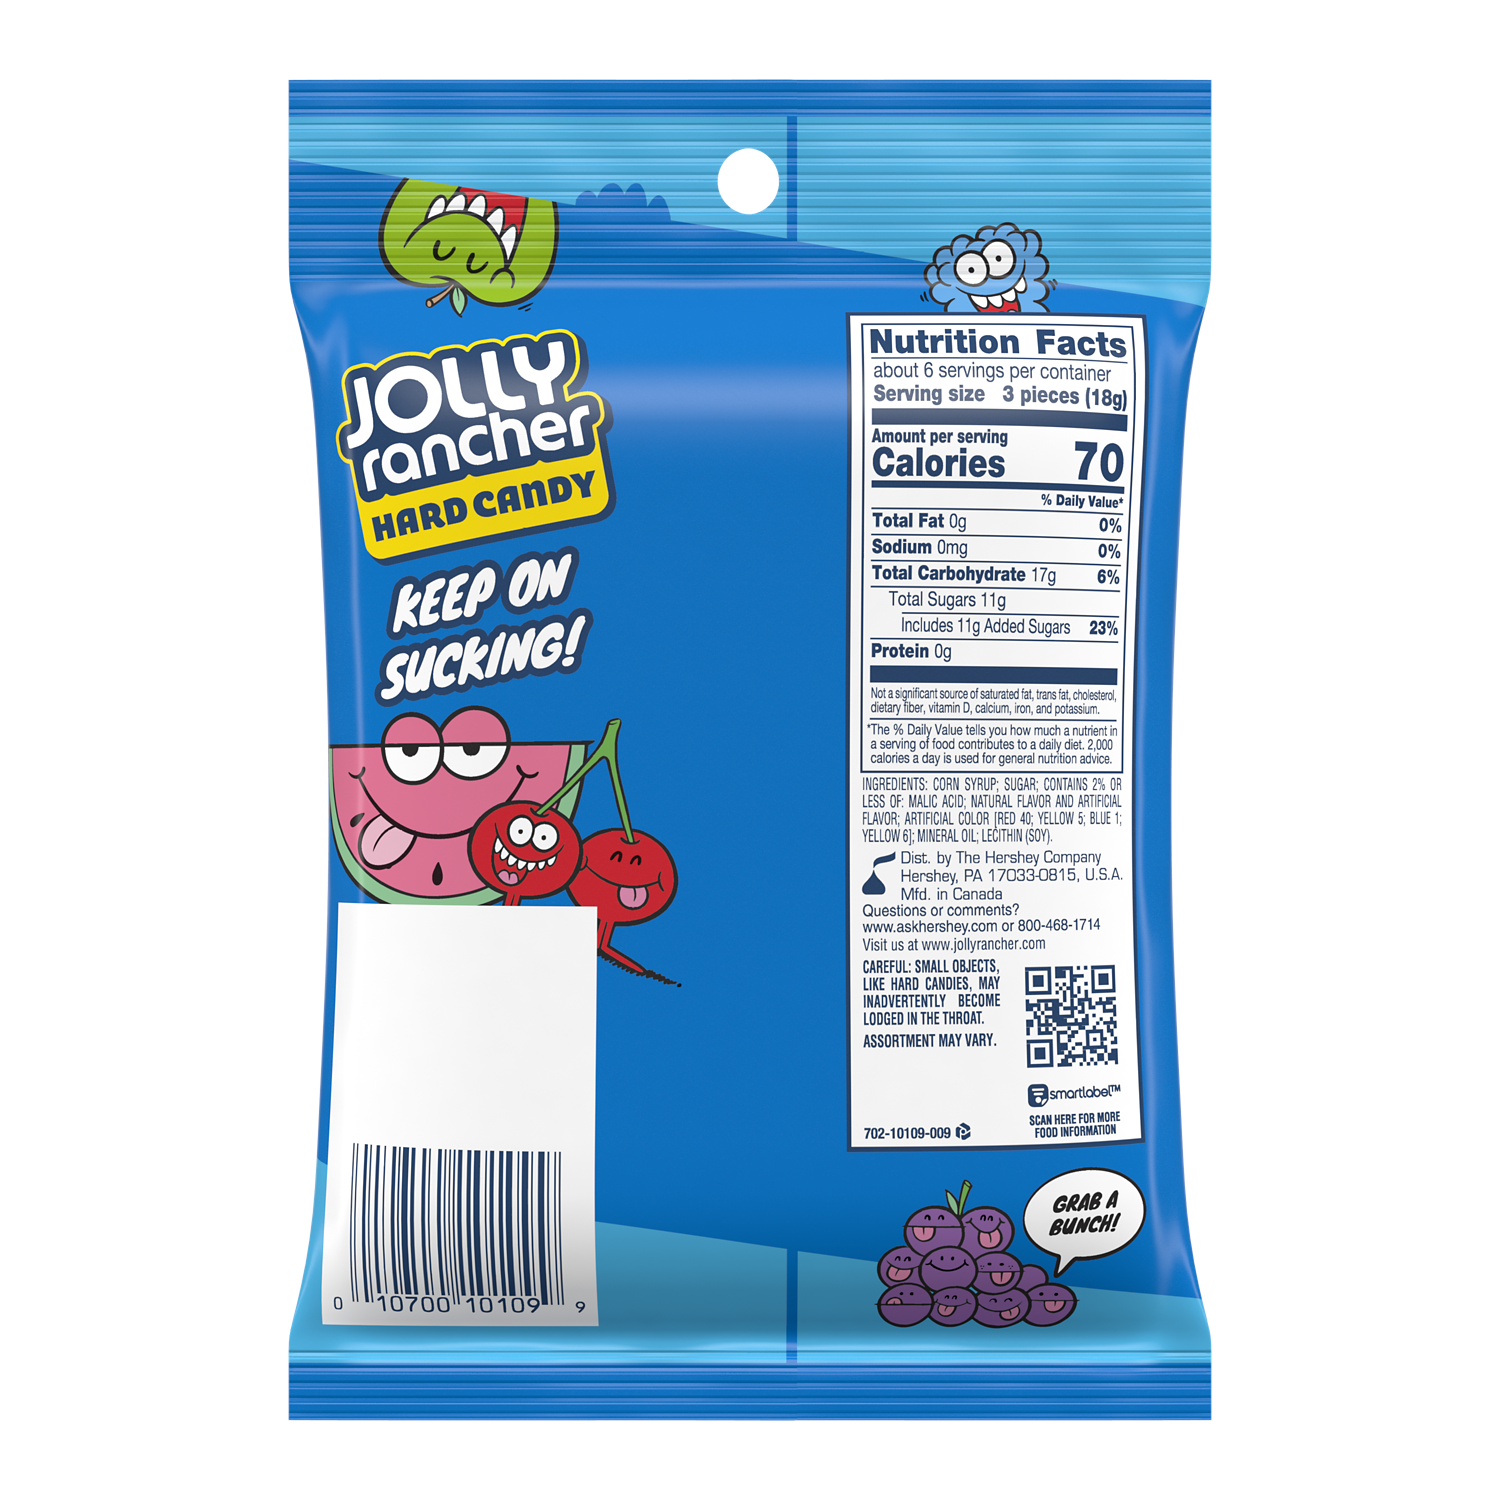 JOLLY RANCHER Original Flavors Hard Candy, 3.8 oz bag - Back of Package